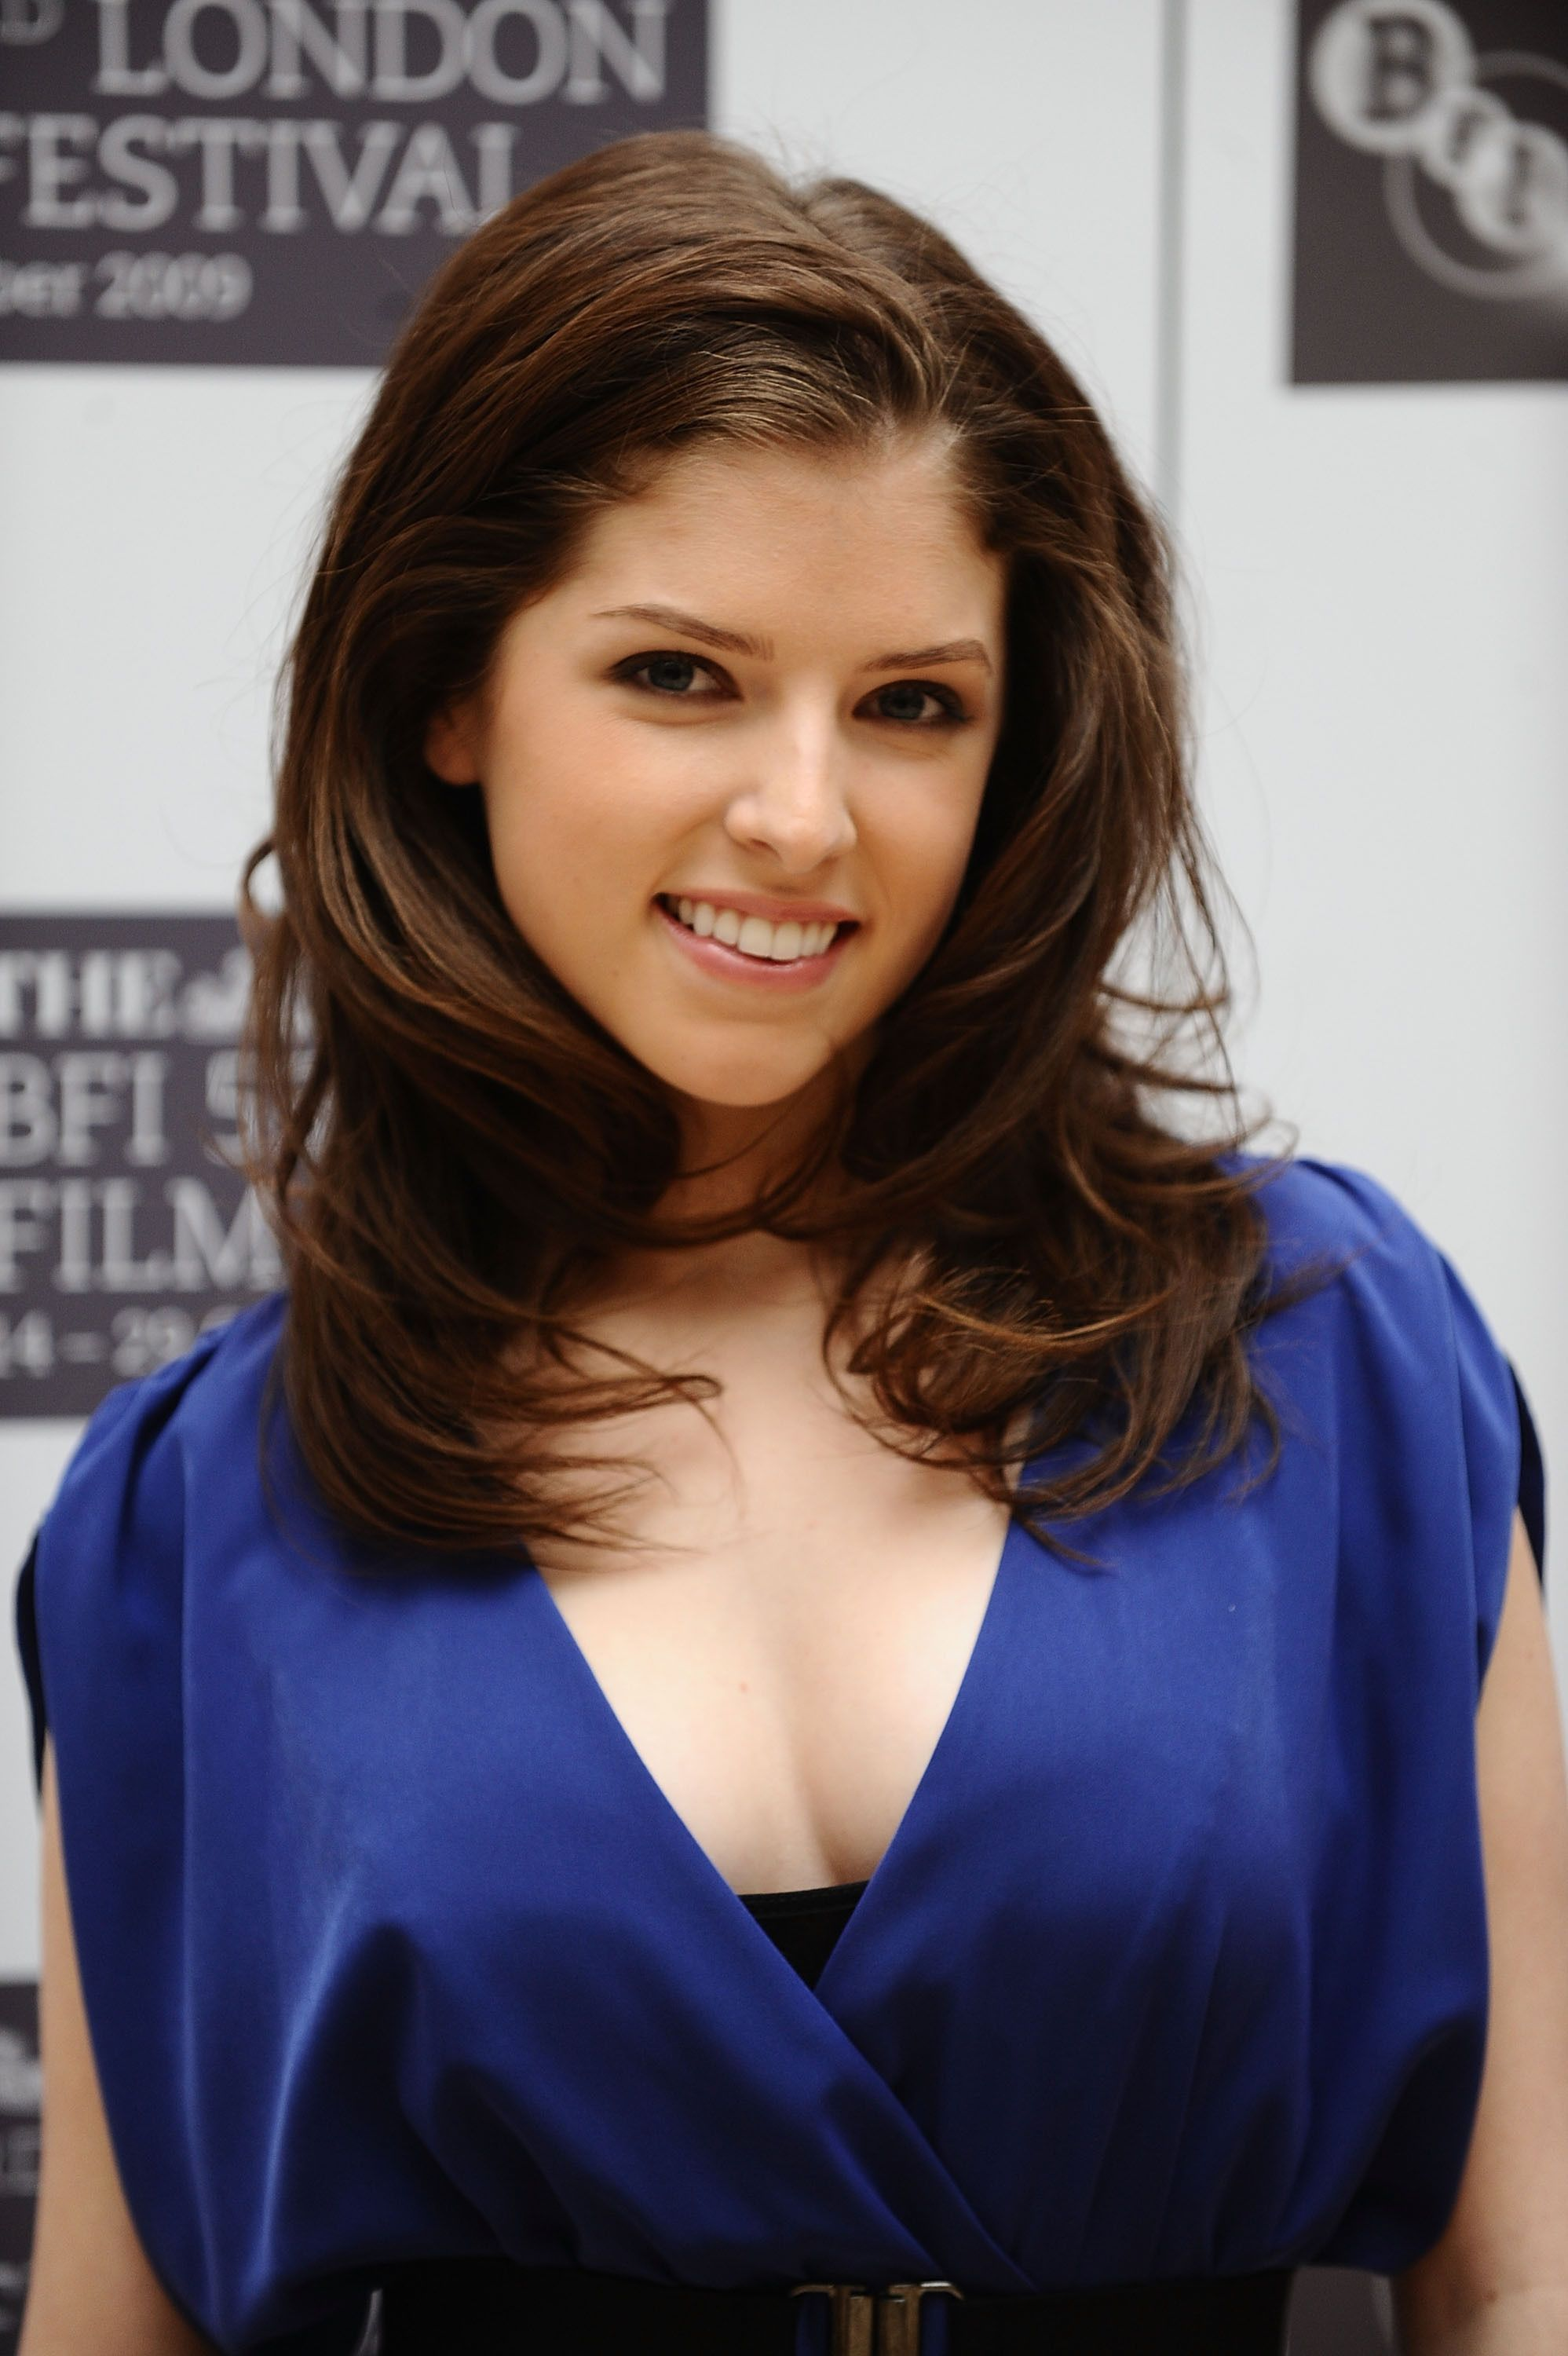 Anna Kendrick This Is My Perfect Tamera Beautiful Smart And Strong Looking